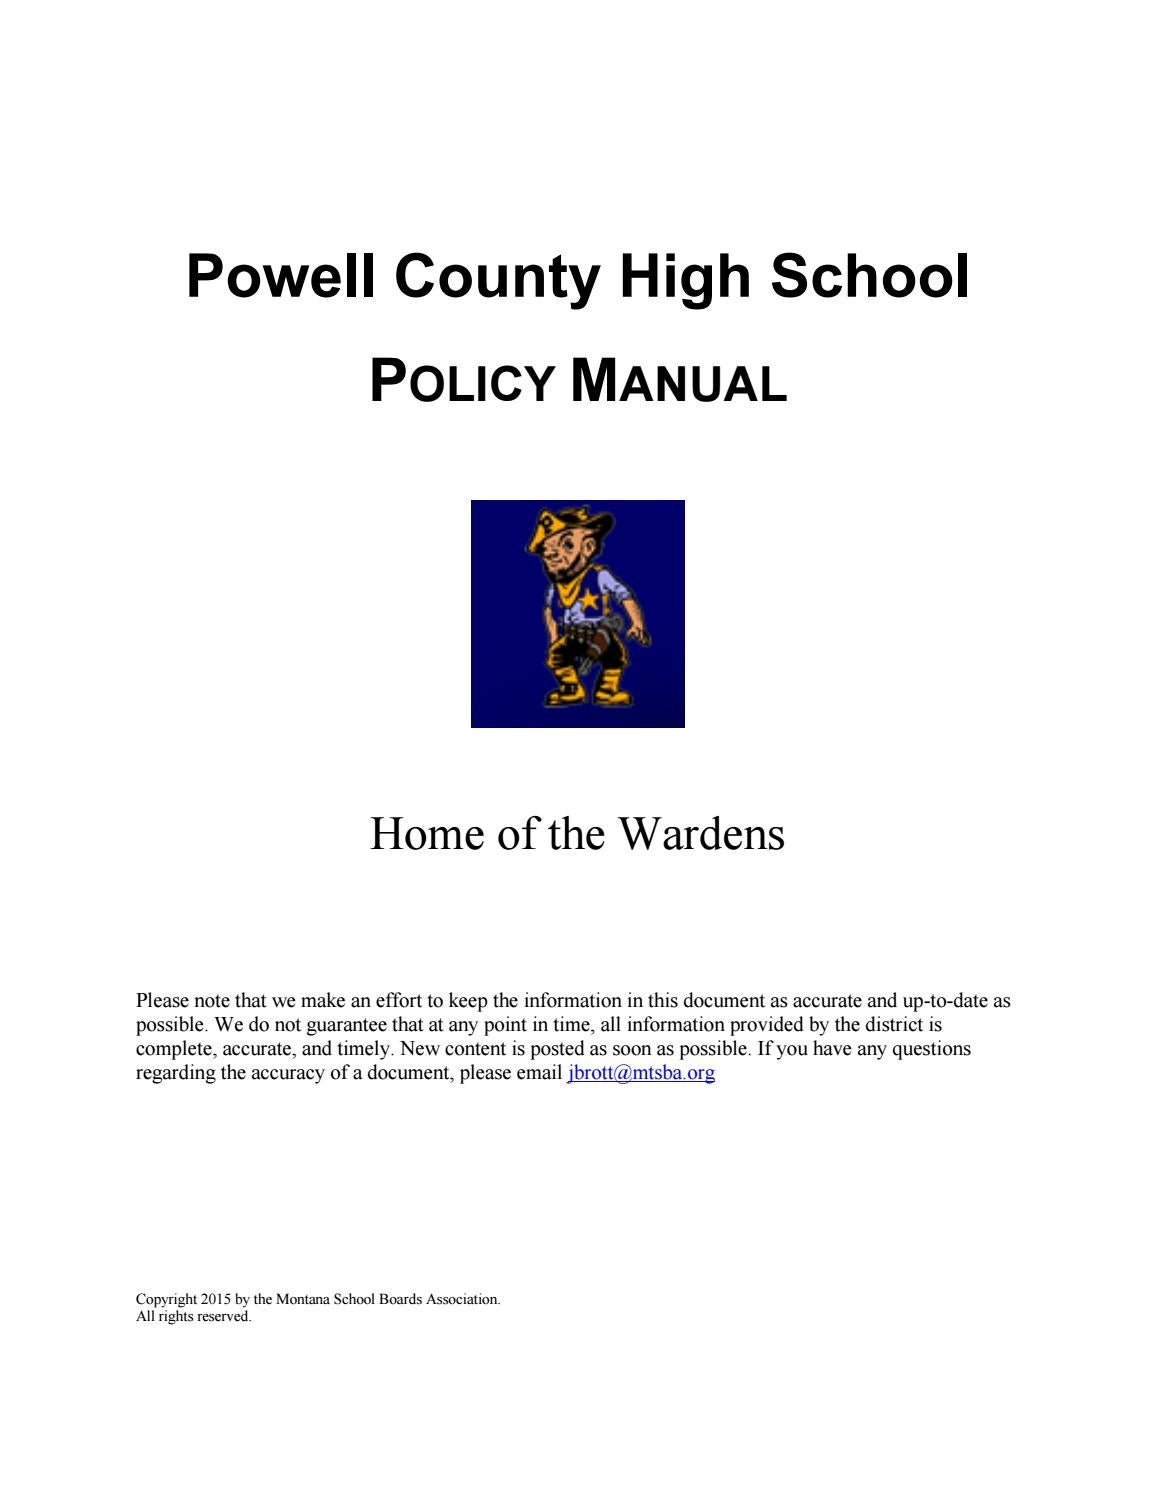 Powell County High Policy Manual by Montana School Boards